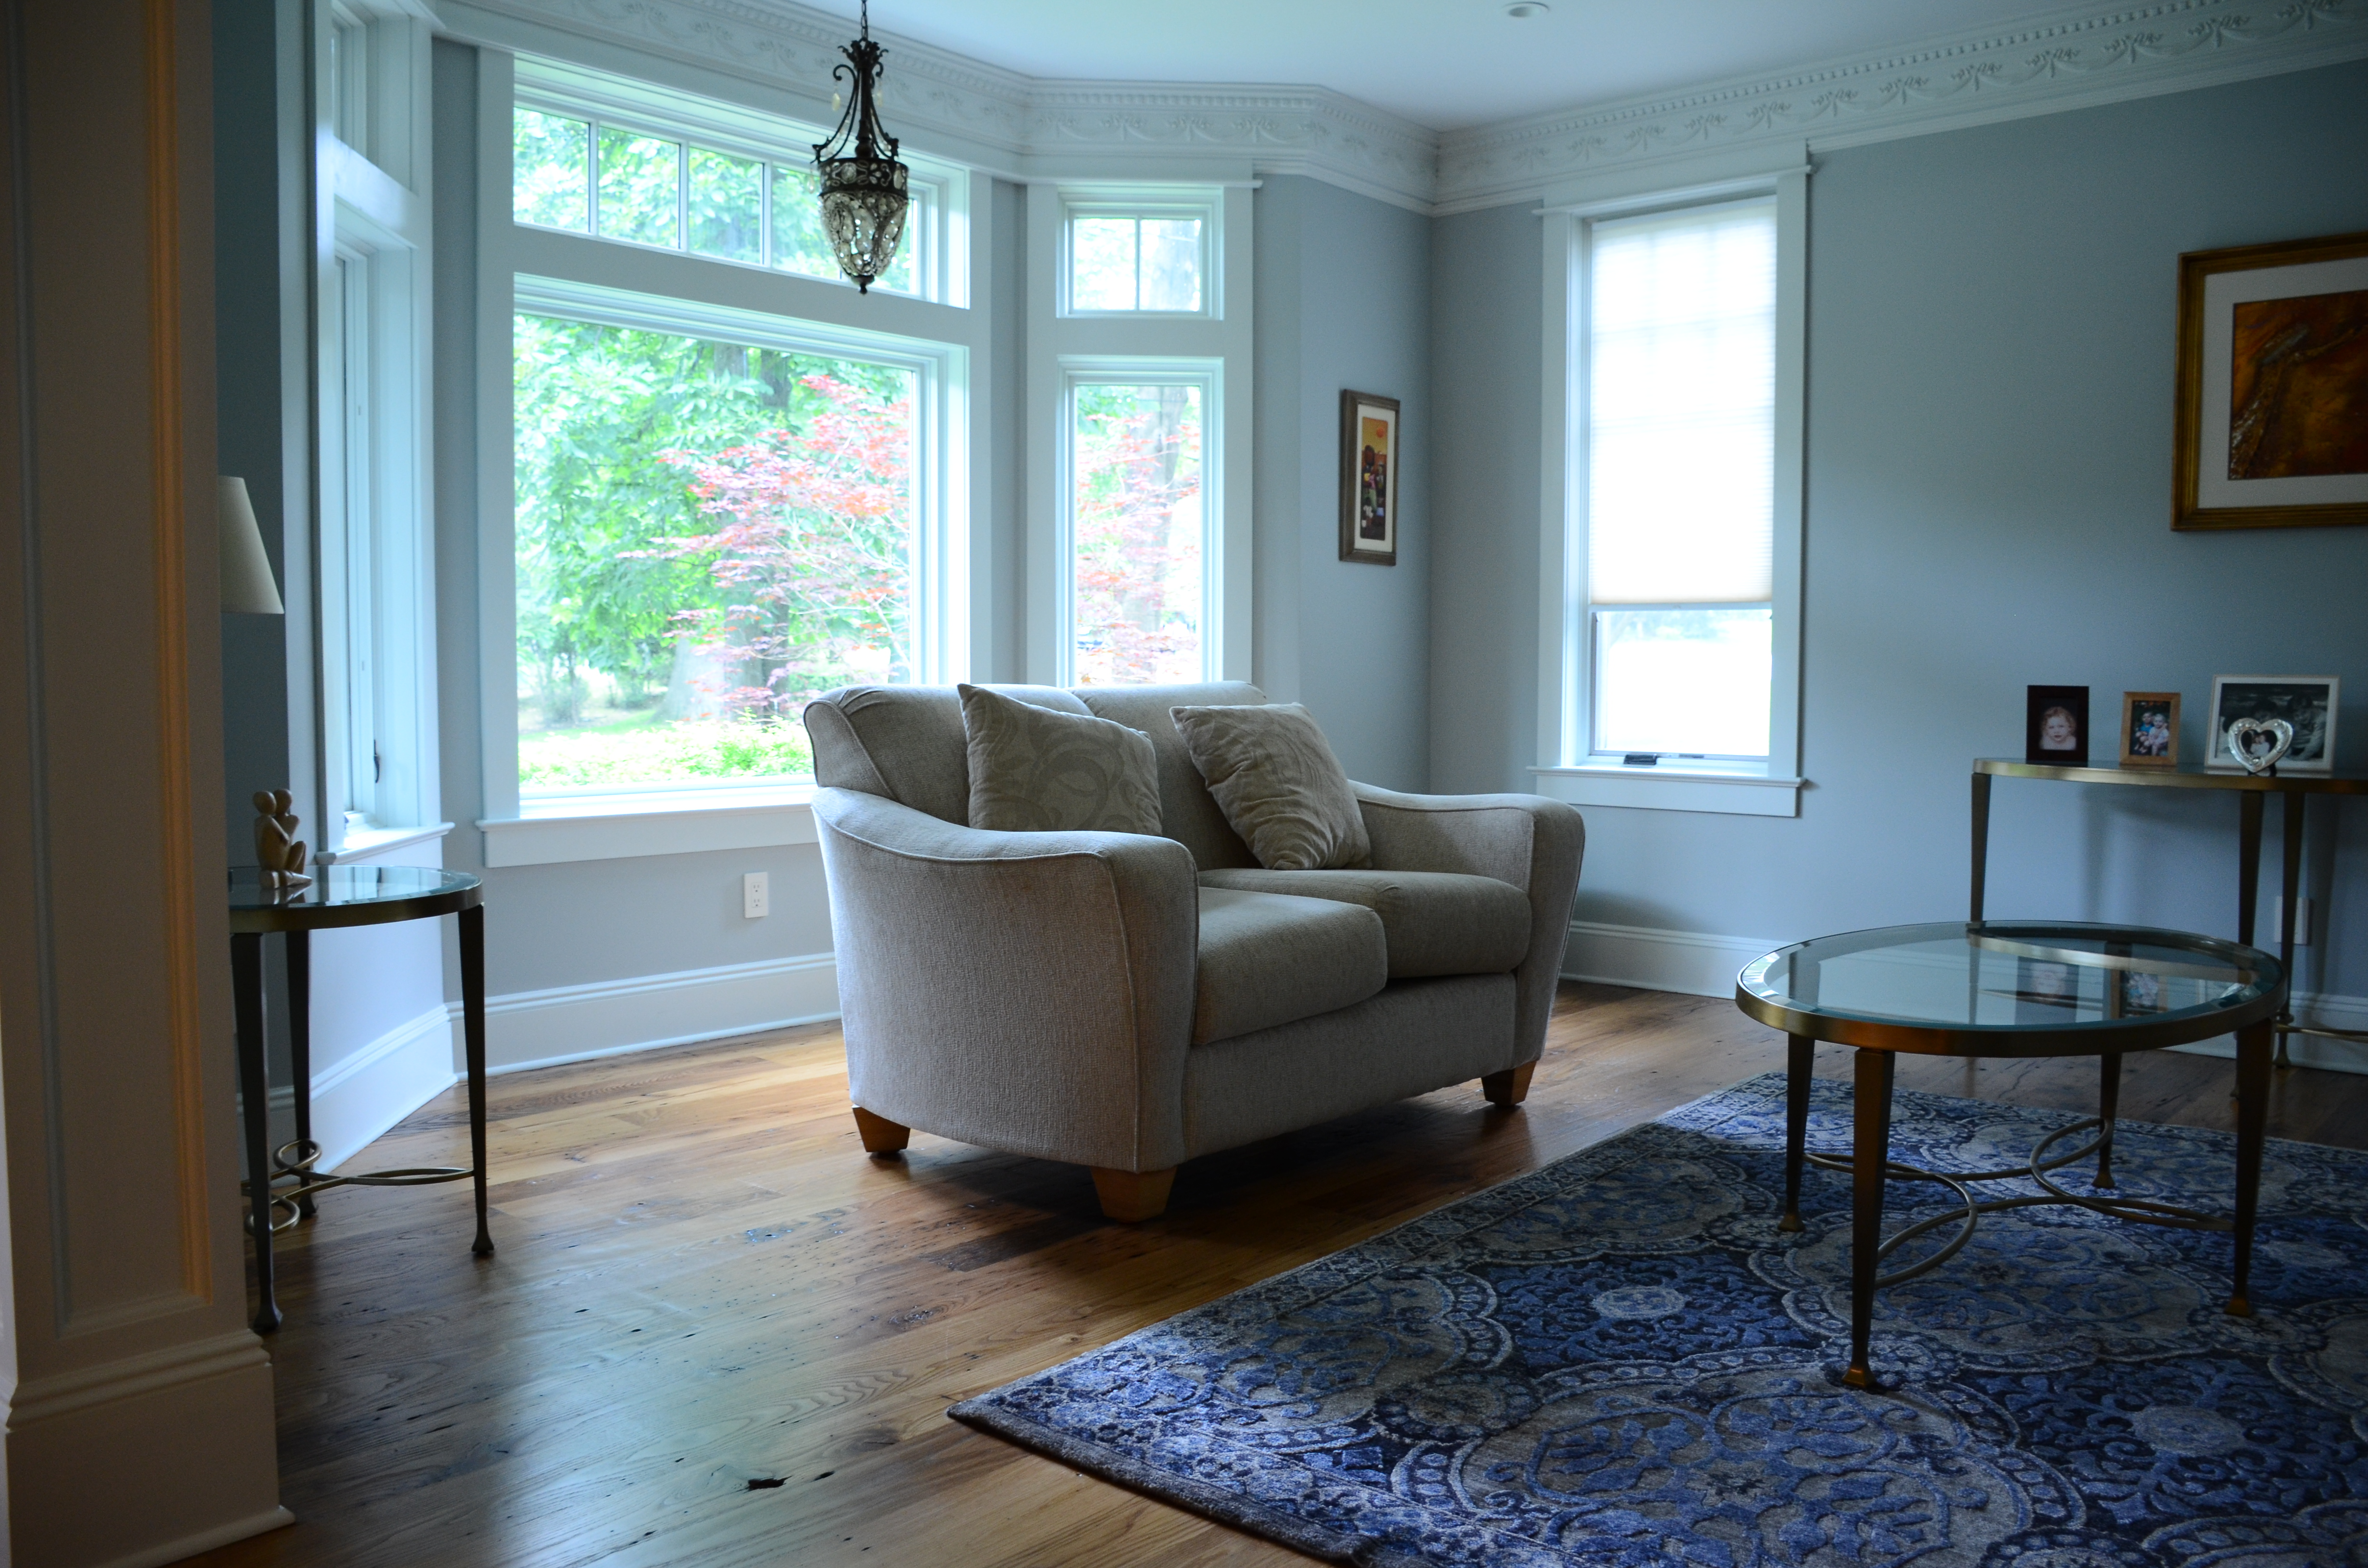 formal-living-room-following-flooring-replacement-following-flood